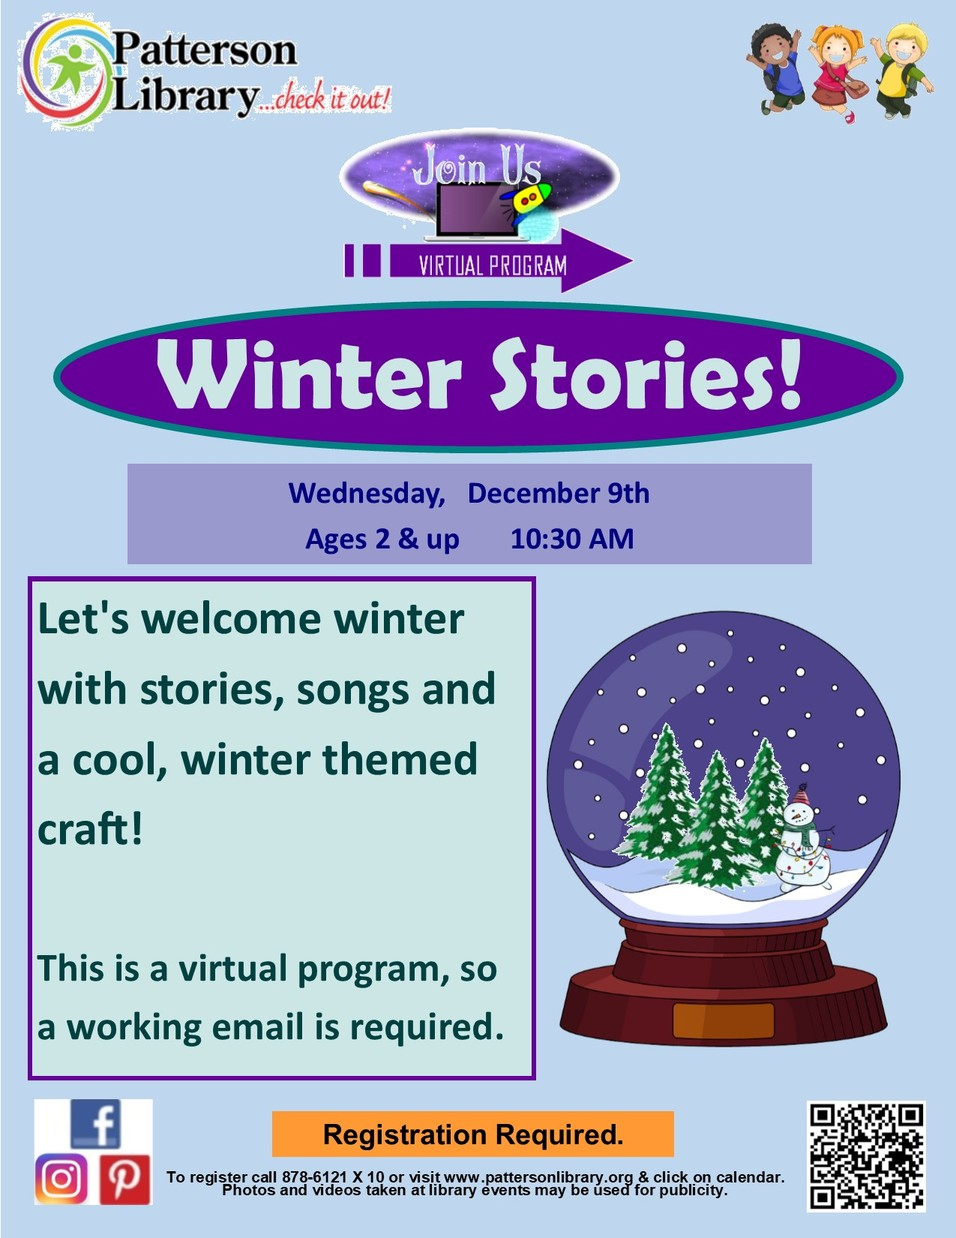 VIRTUAL - FREE! Winter Stories with Patterson Library